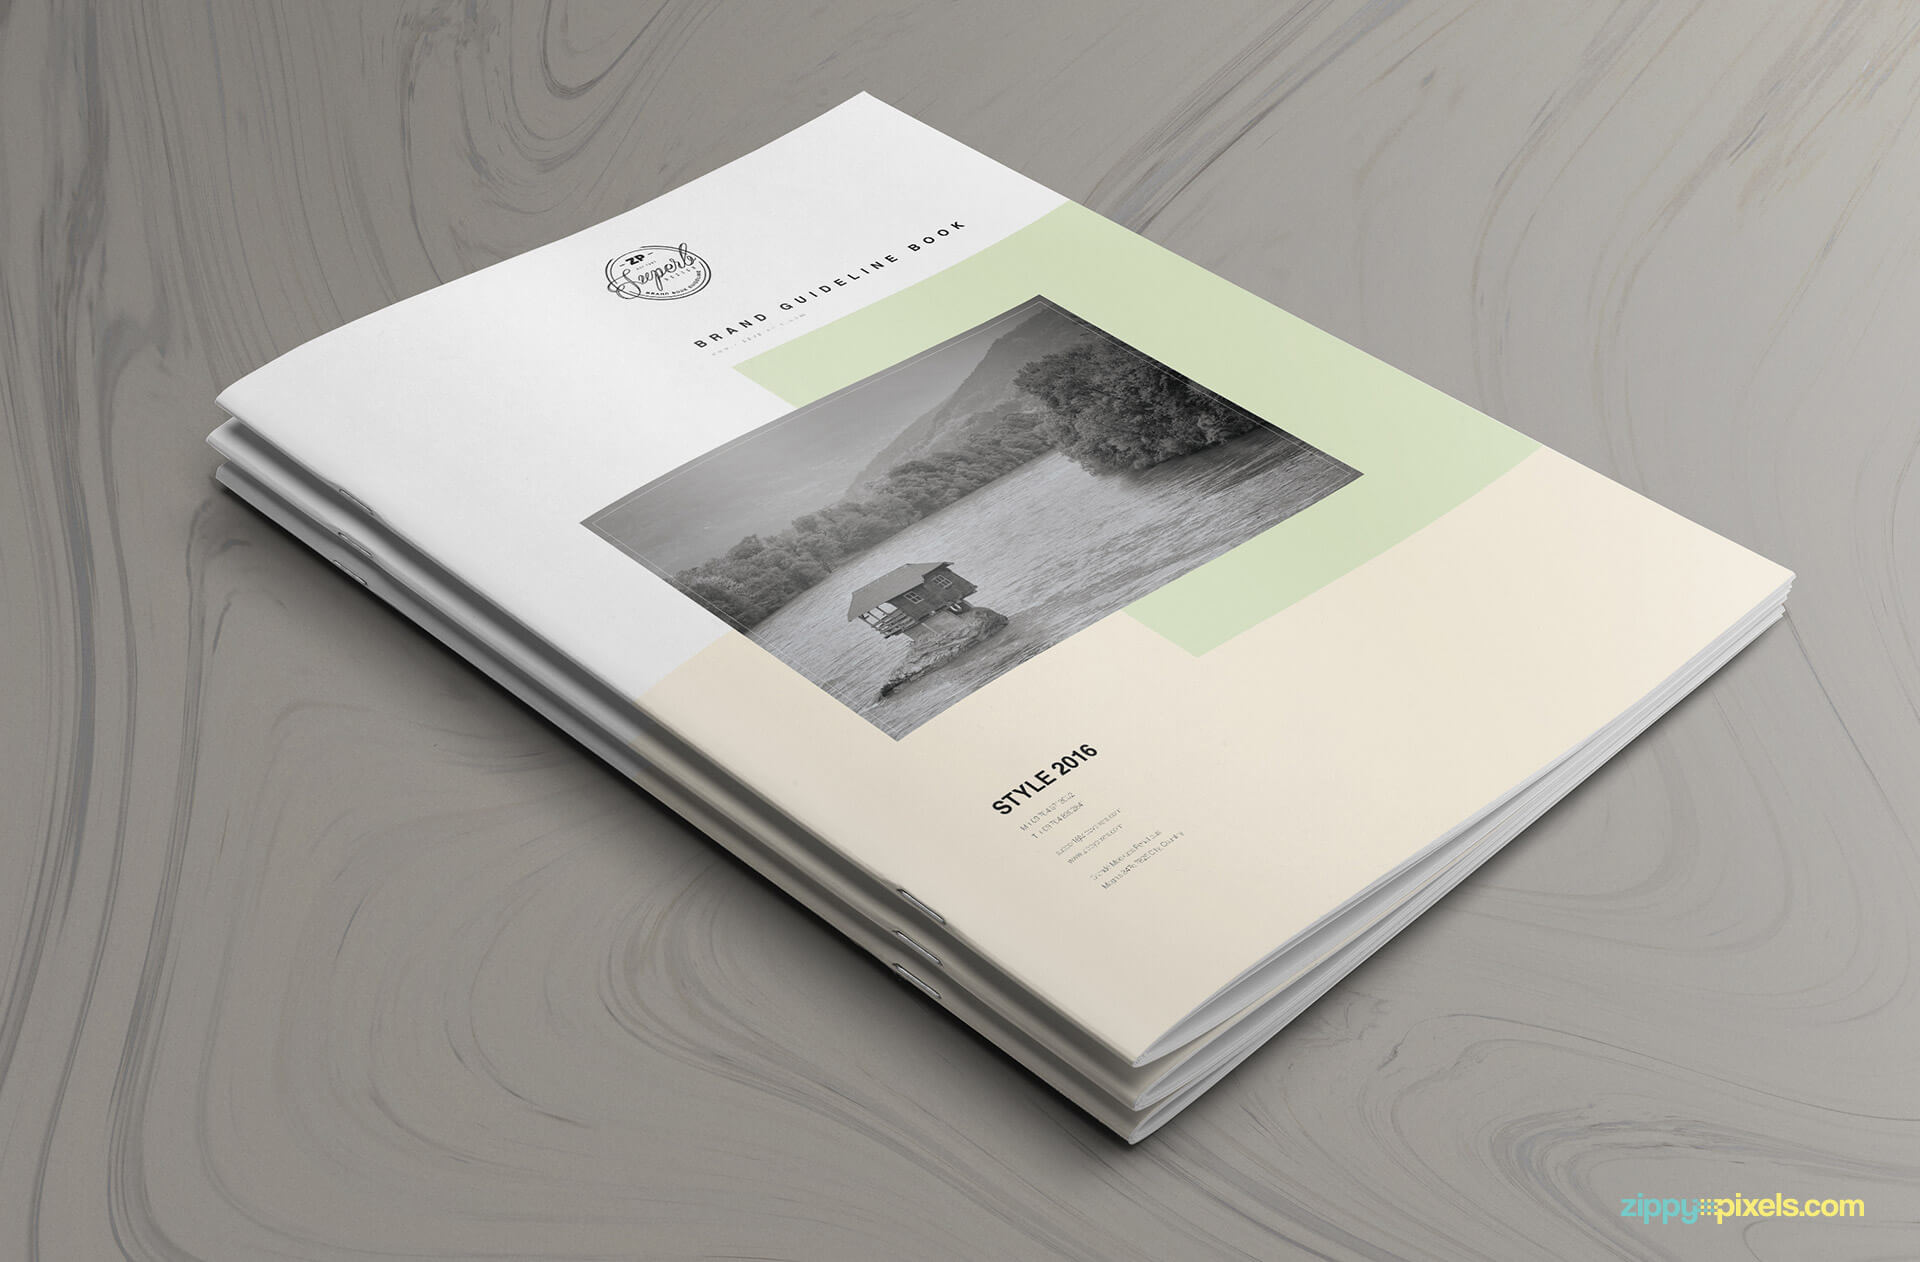 adobe indesign cs4 tutorial pdf